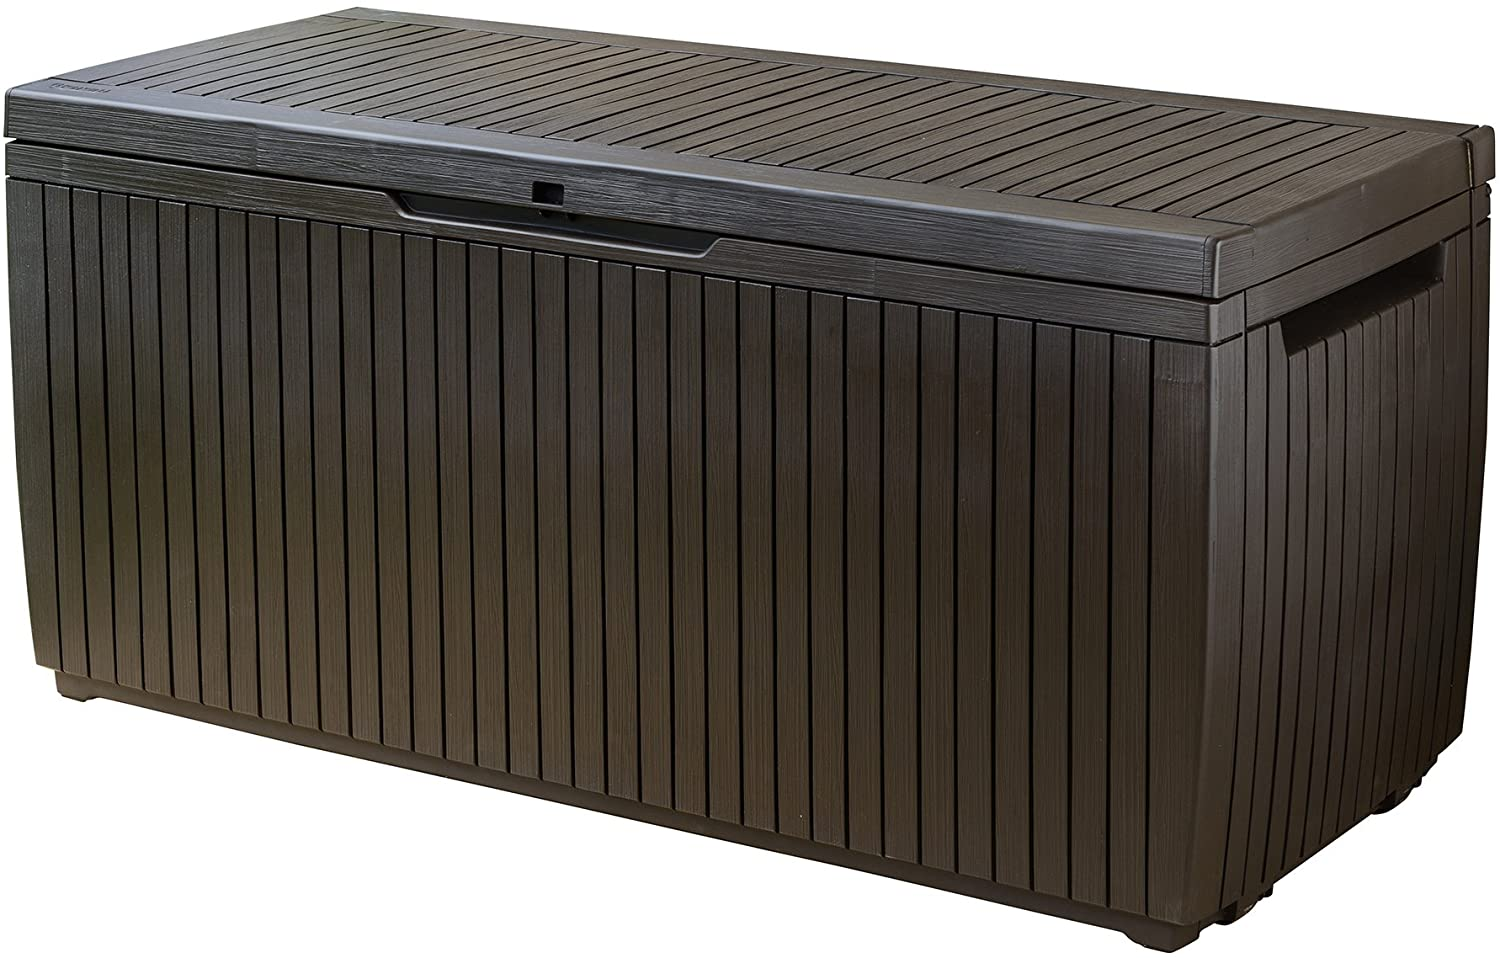 B01M5C6UXN Keter Springwood 80 Gallon Resin Outdoor Storage Box for Patio Furniture Cushions, Pool Toys, and Garden Tools with Handles, Brown 81ttpiRG3oL